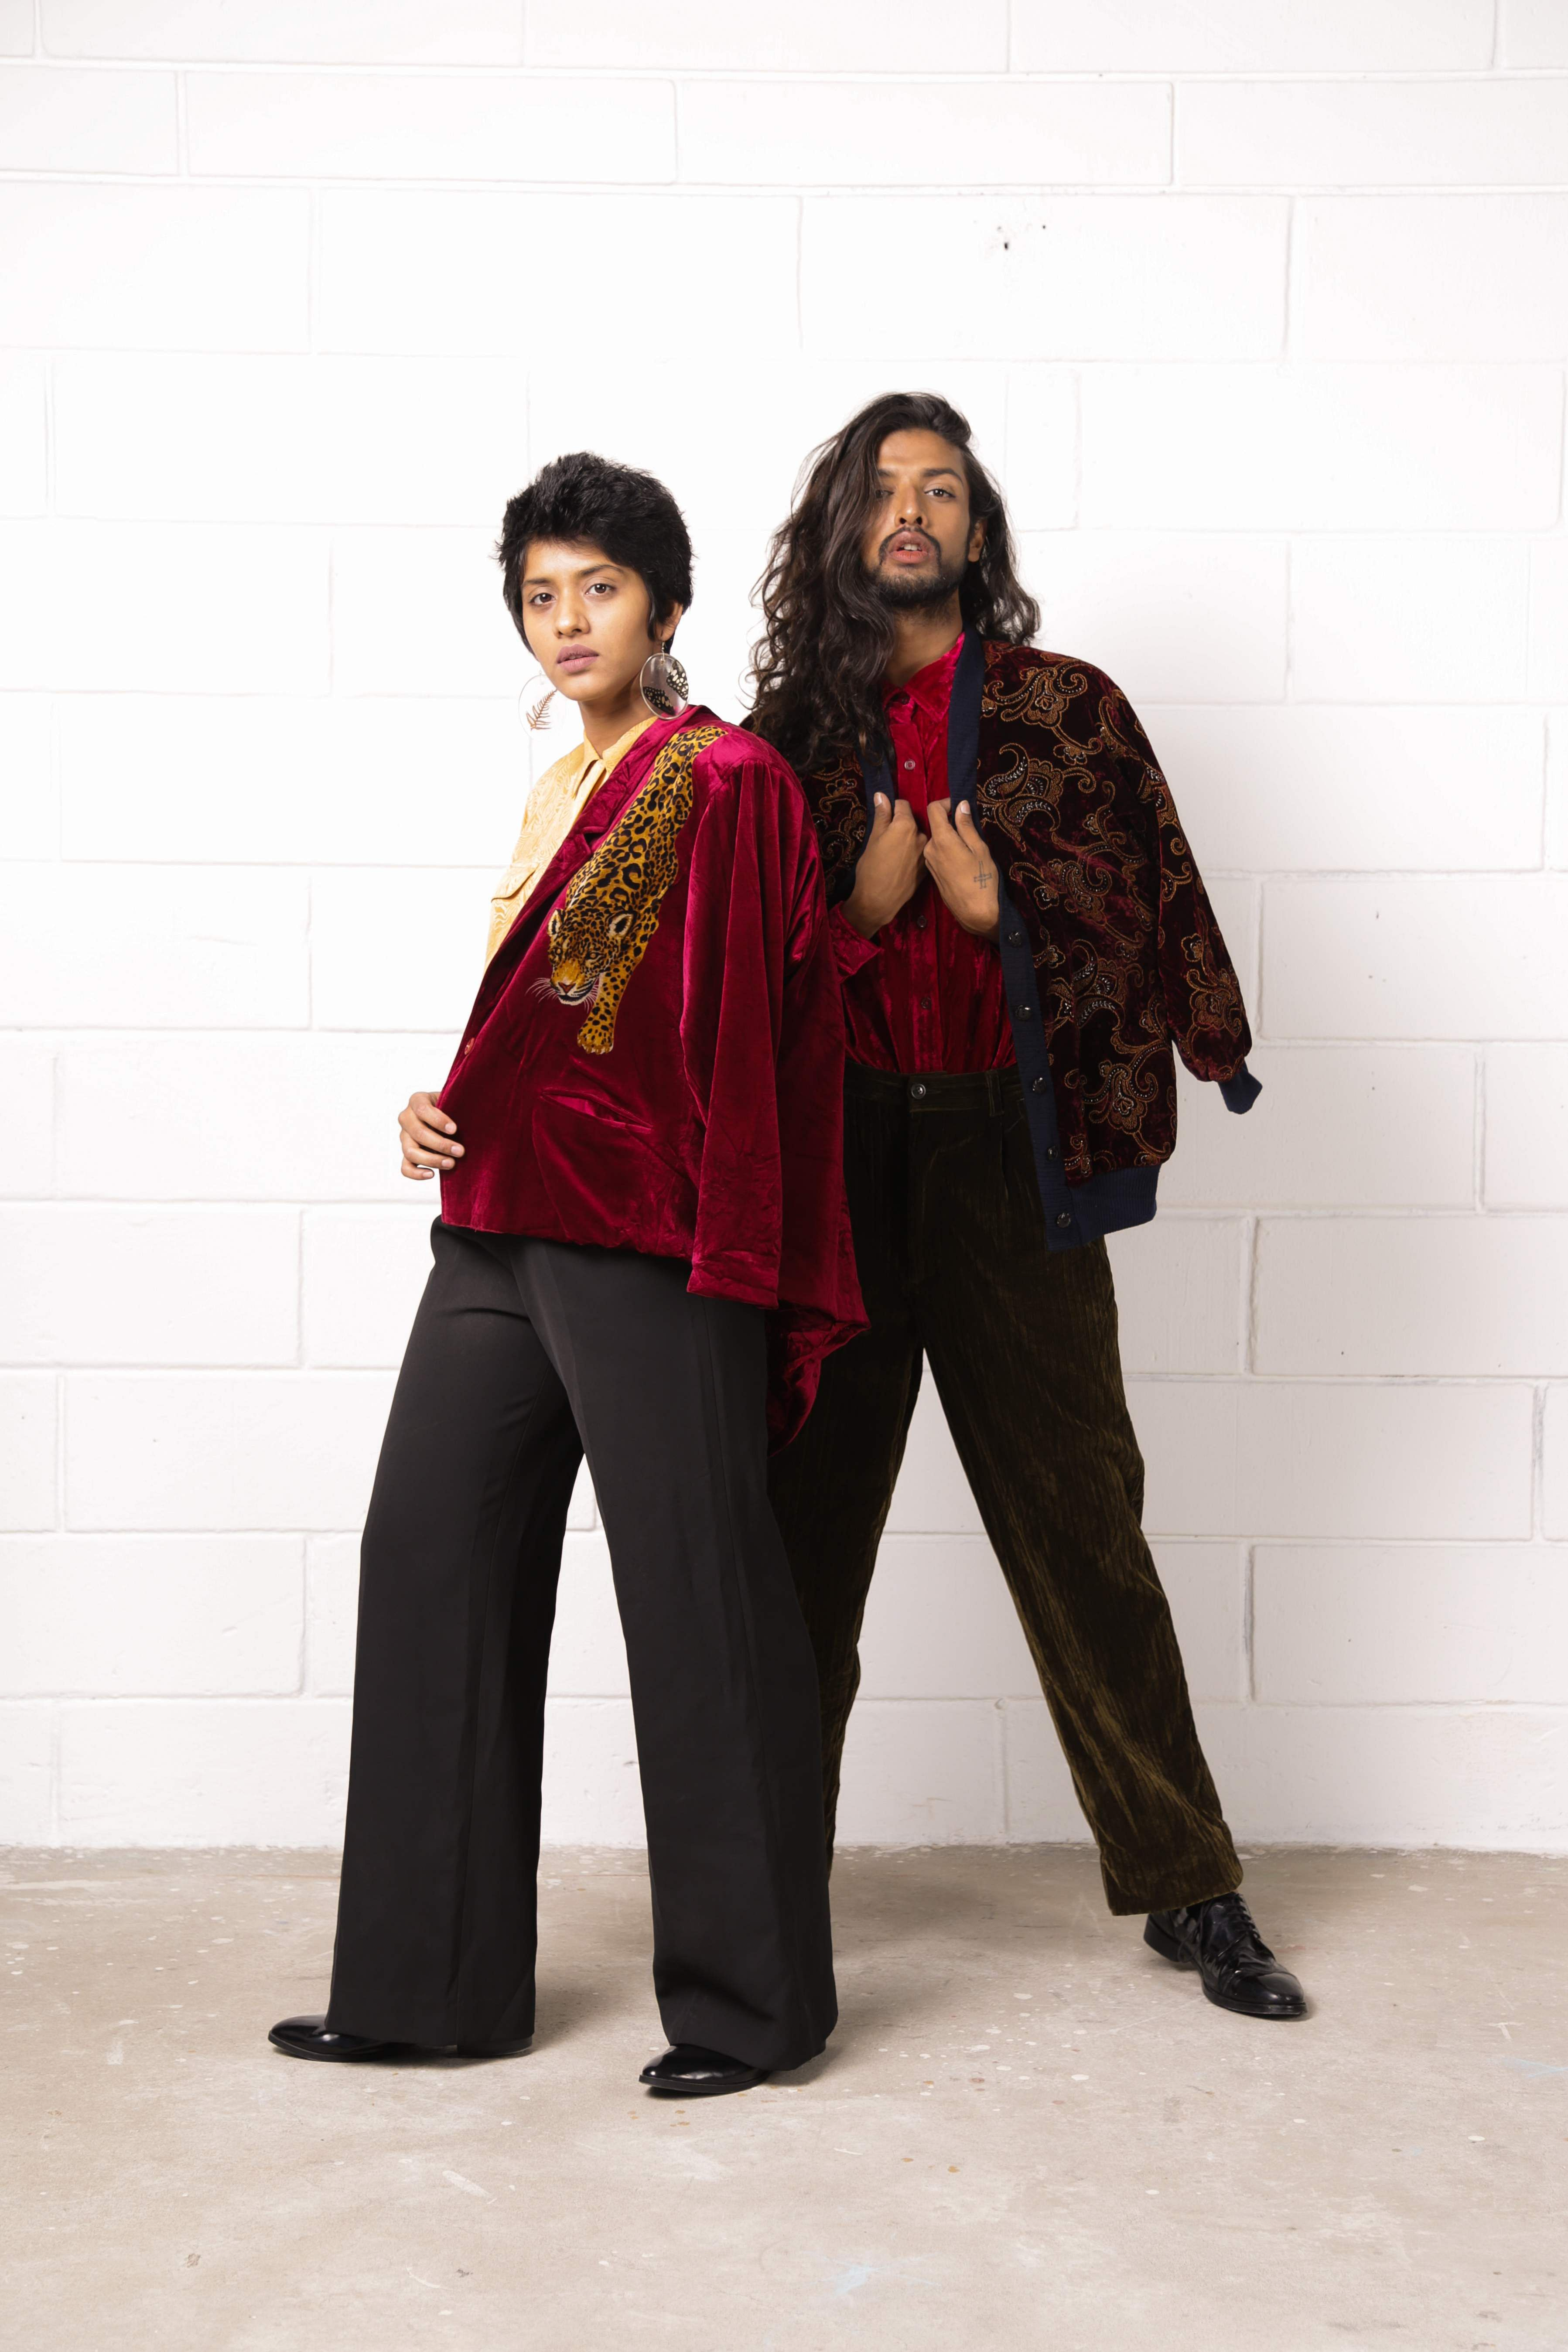 Priyanka and Anugrah in clothes from the brand